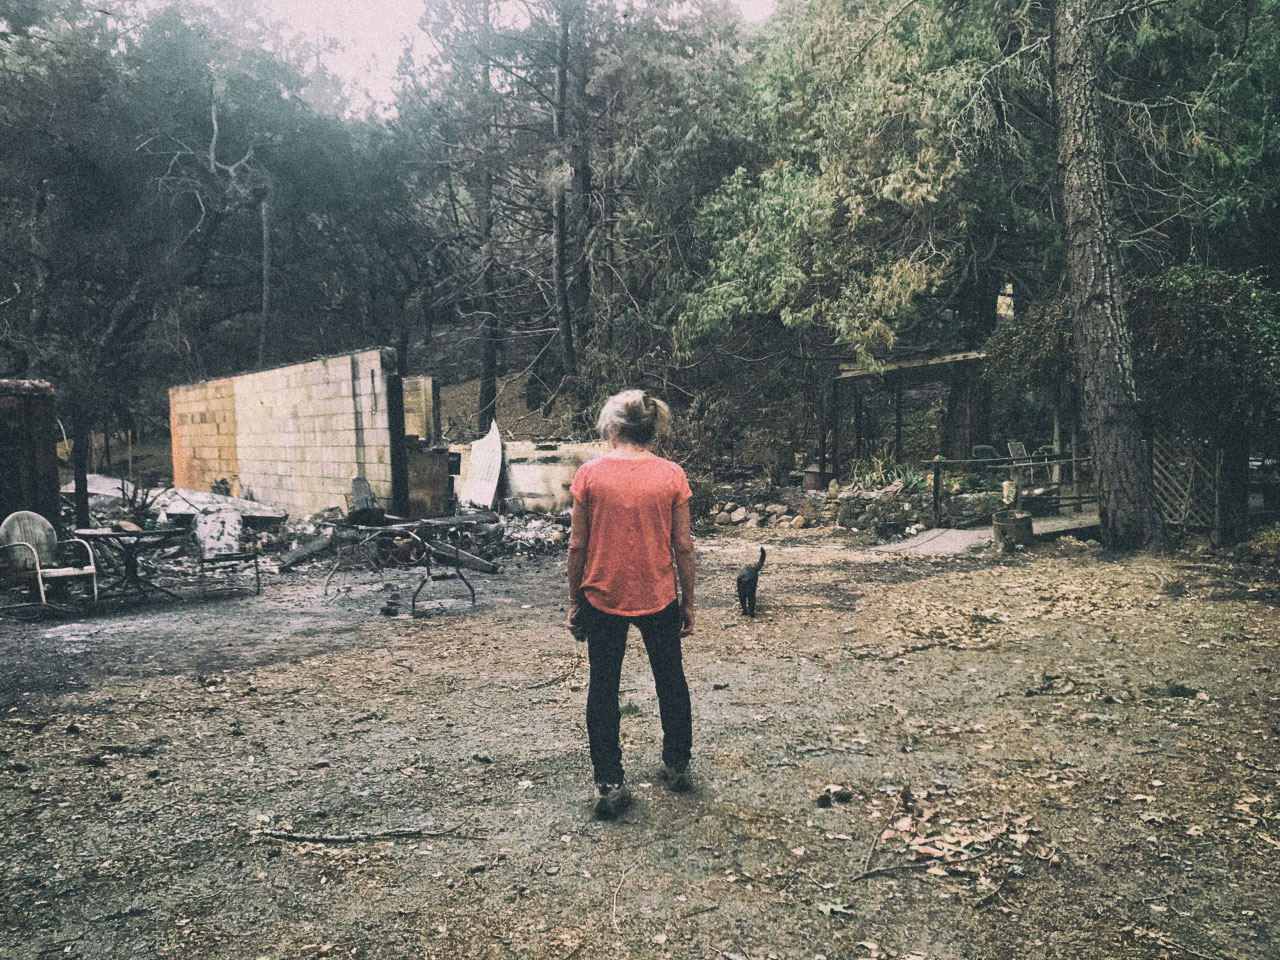 The studio now after the fire. Claudette surveys the damage with her kitten Midnight, who miraculously survived the worst of it all.